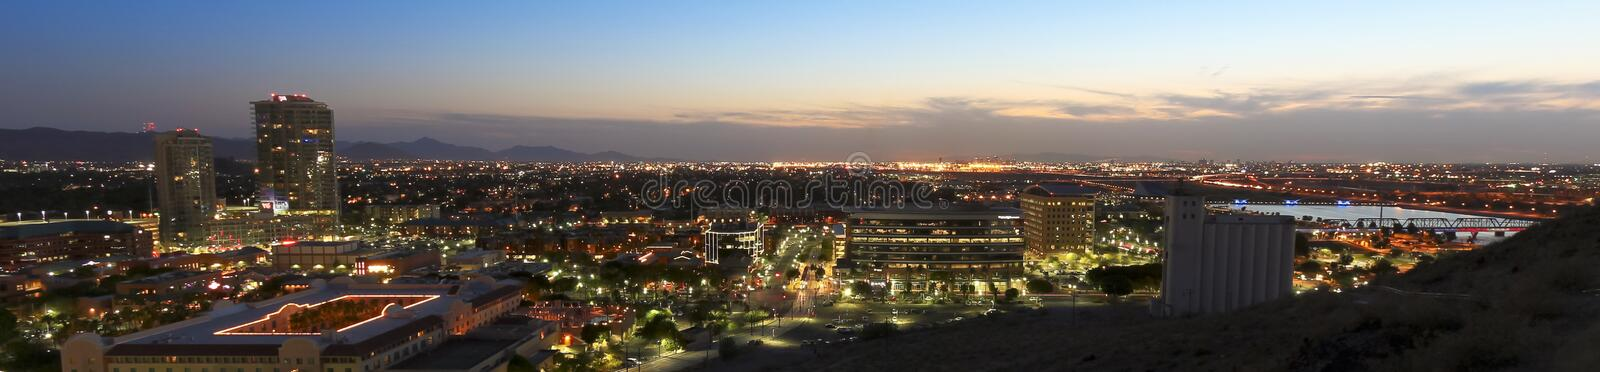 A Twilight View of Tempe and Phoenix stock photography